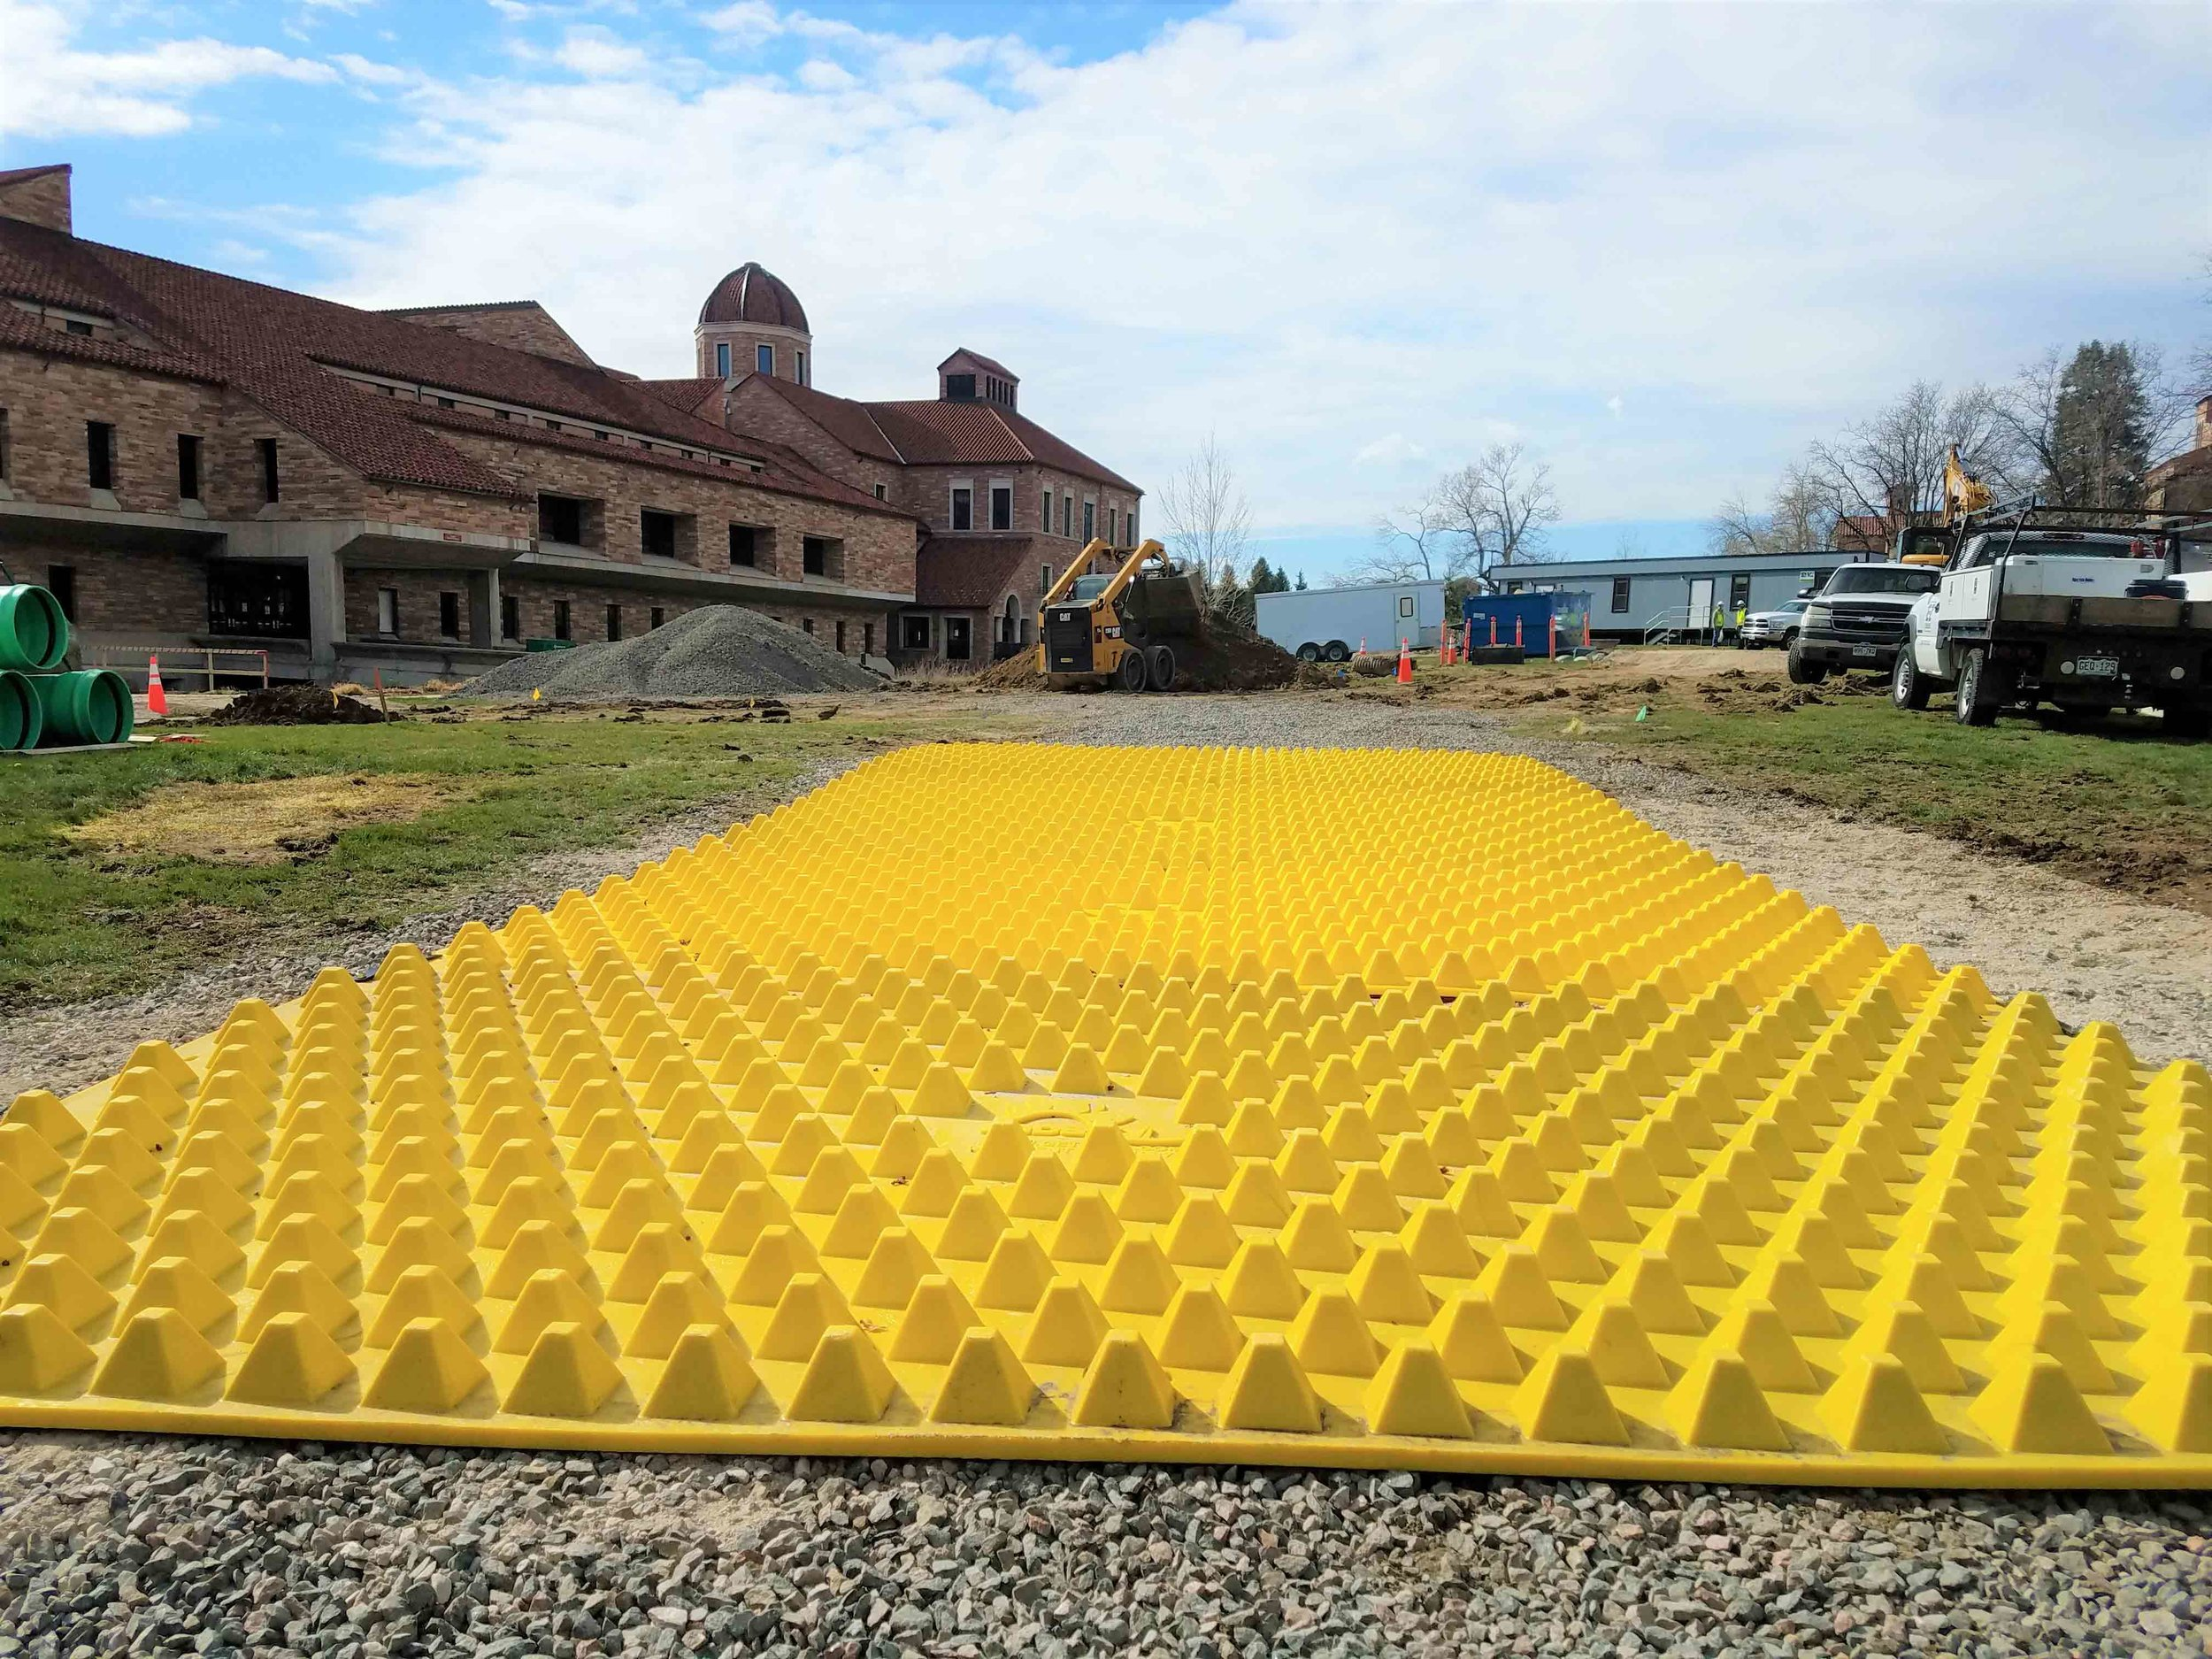 FODS_CUEngineeringBusiness_expansionProjects_FODSTrackoutControlSystem_ConstructionEntranceConstructionExit_mudMats_yellowPlasticConstructionMats_wheelwash_rumbleGrate.jpg